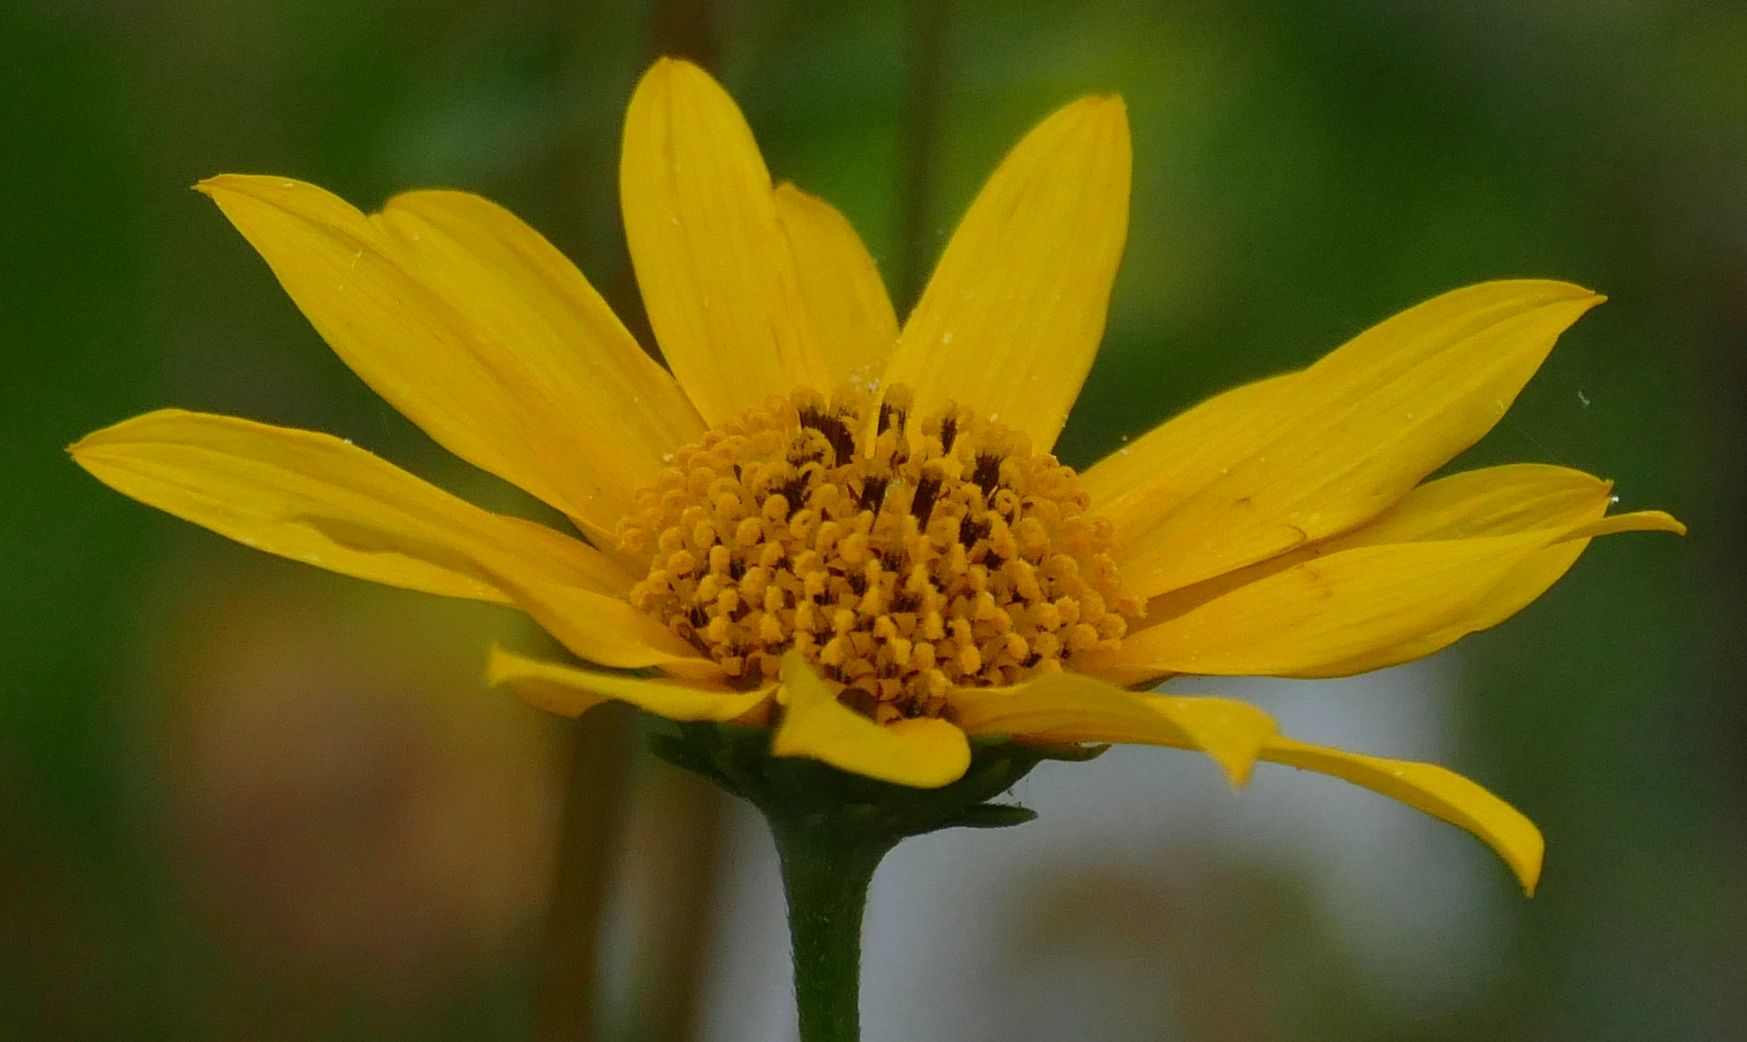 "{""blocks"":[{""key"":""4jgbe"",""text"":""Helianthus occidentalis few leaf Western Sunflower - potted plants  john@easywildflowers.com \t"",""type"":""unstyled"",""depth"":0,""inlineStyleRanges"":[],""entityRanges"":[],""data"":{}}],""entityMap"":{}}"